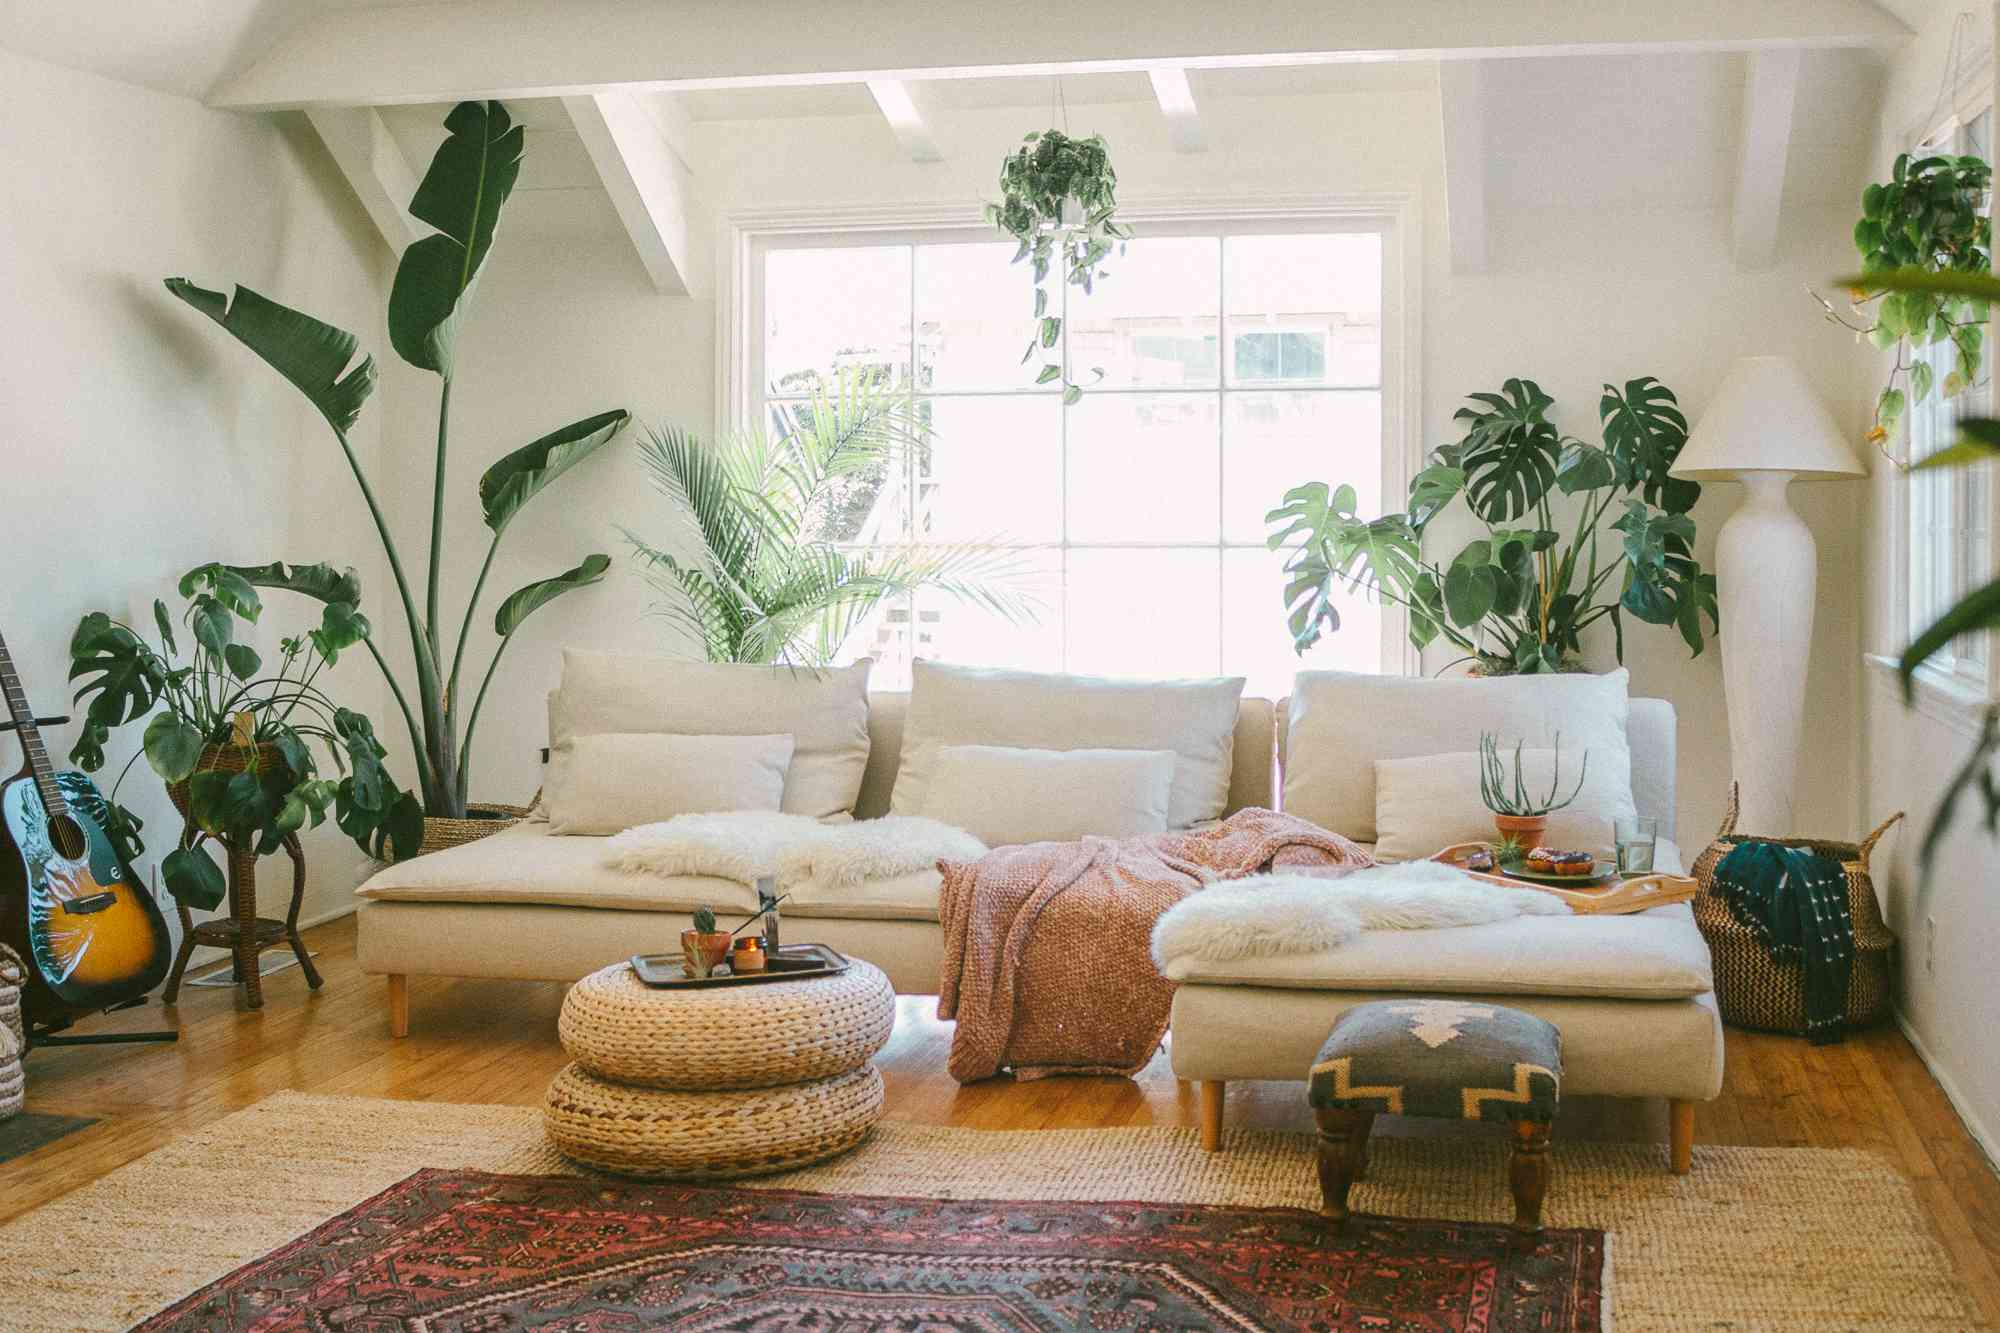 Cozy rental living room with blankets